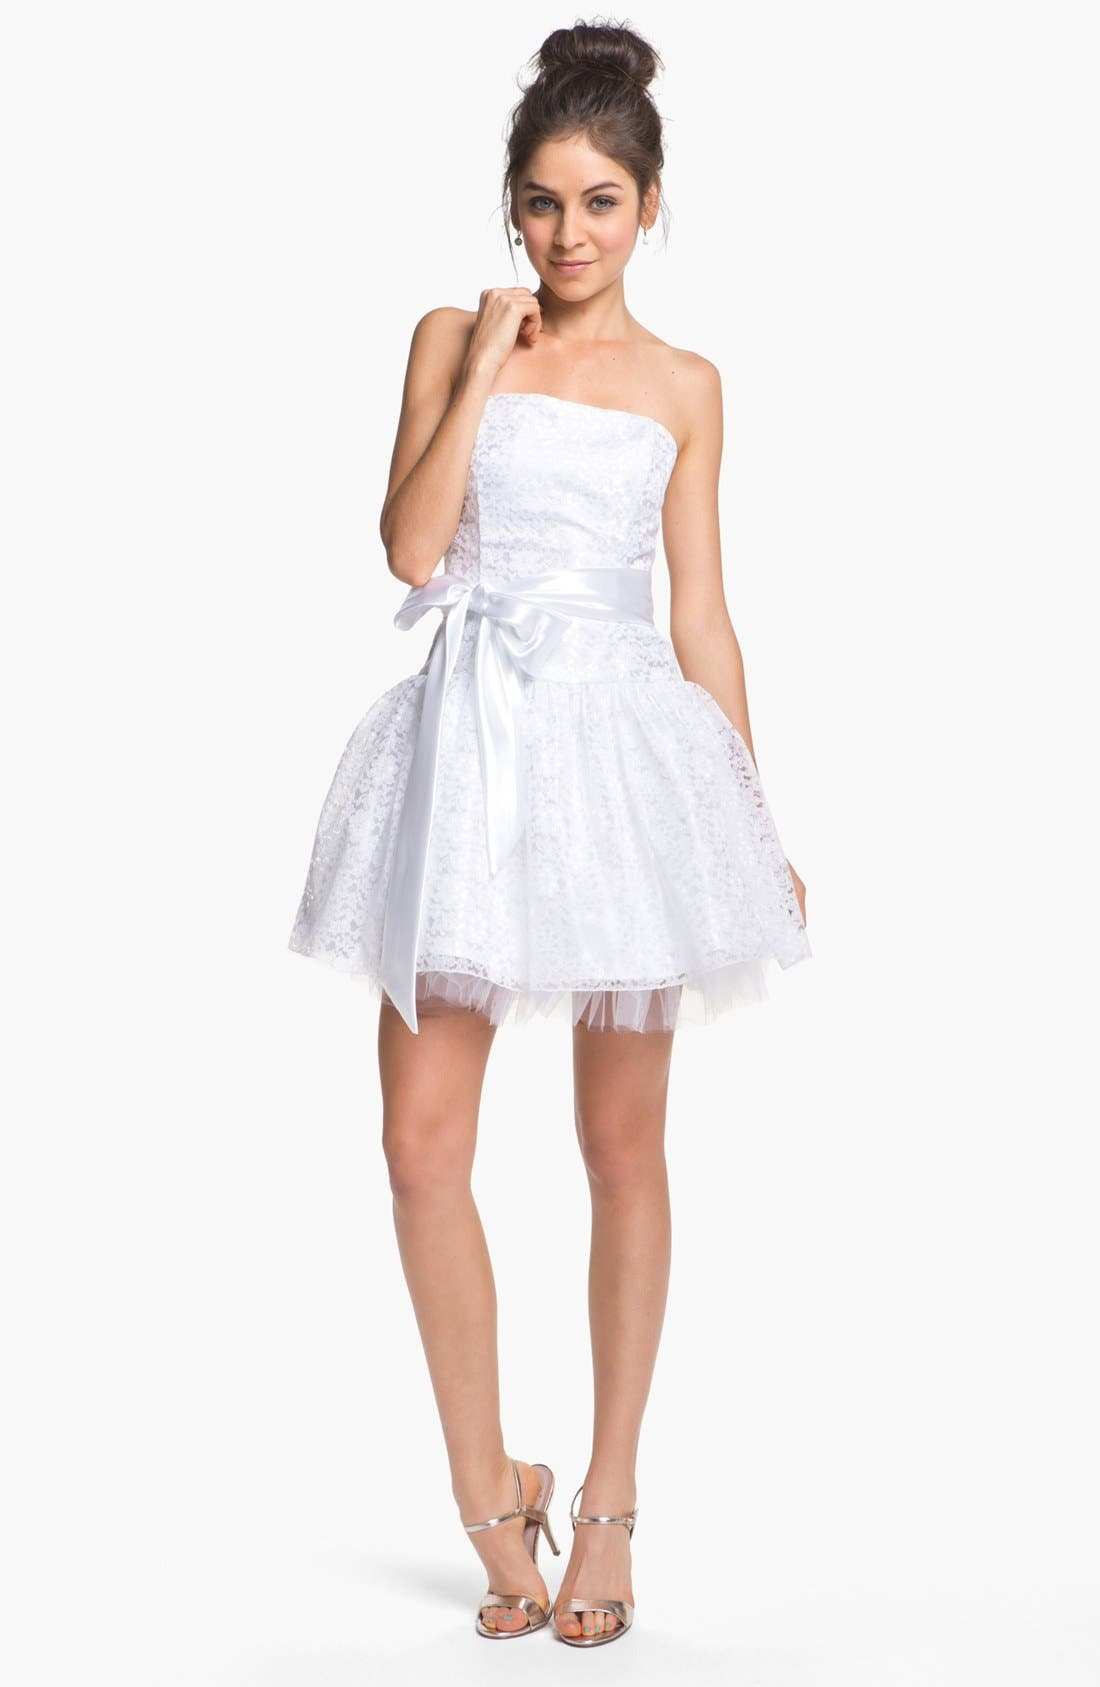 Main Image - Jessica McClintock Strapless Lace & Tulle Dress